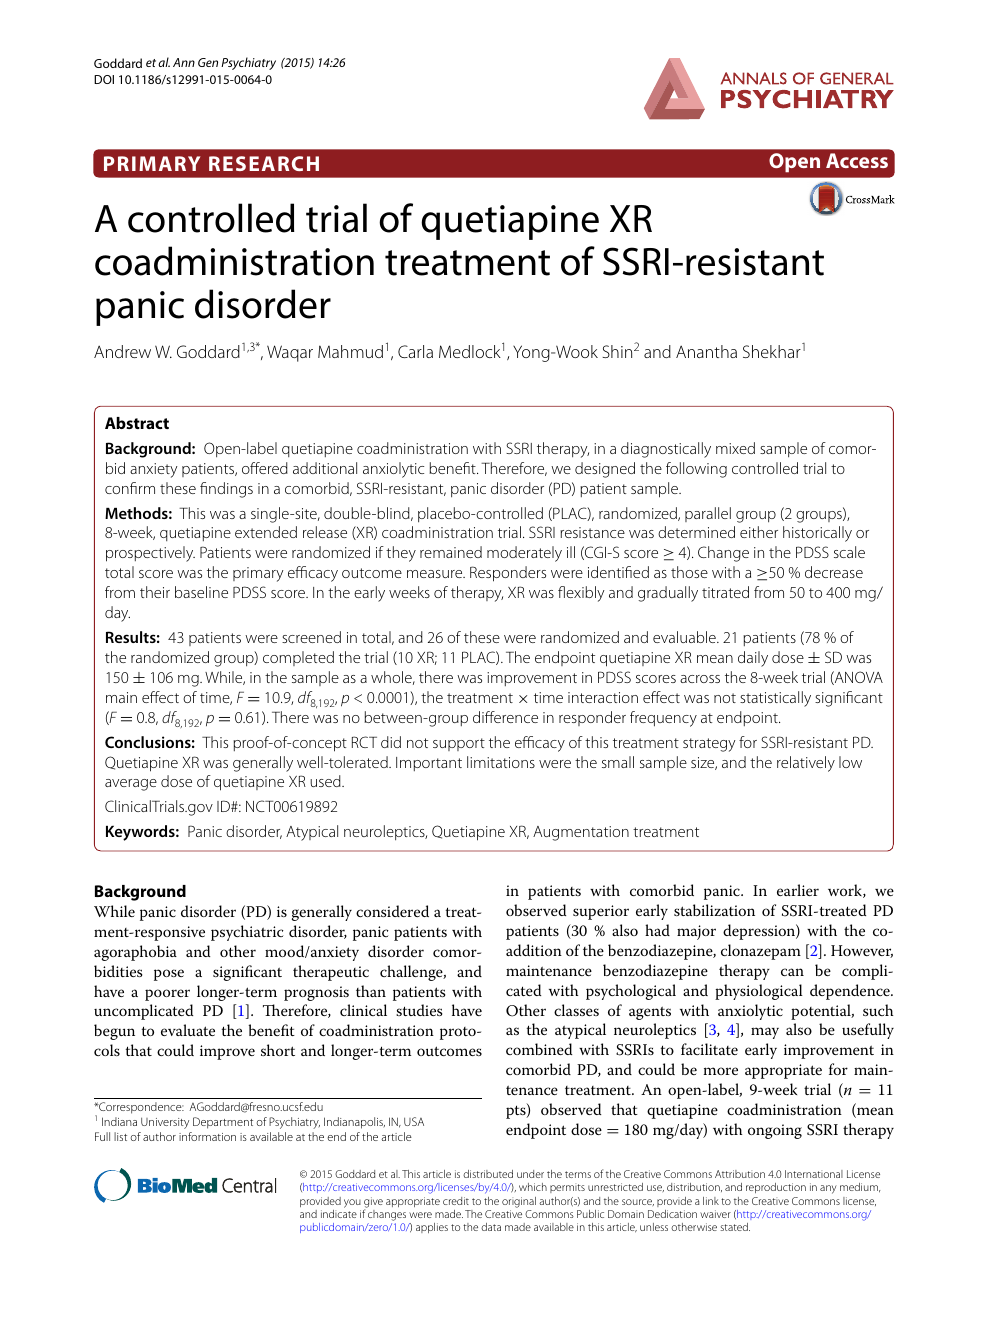 A controlled trial of quetiapine XR coadministration treatment of